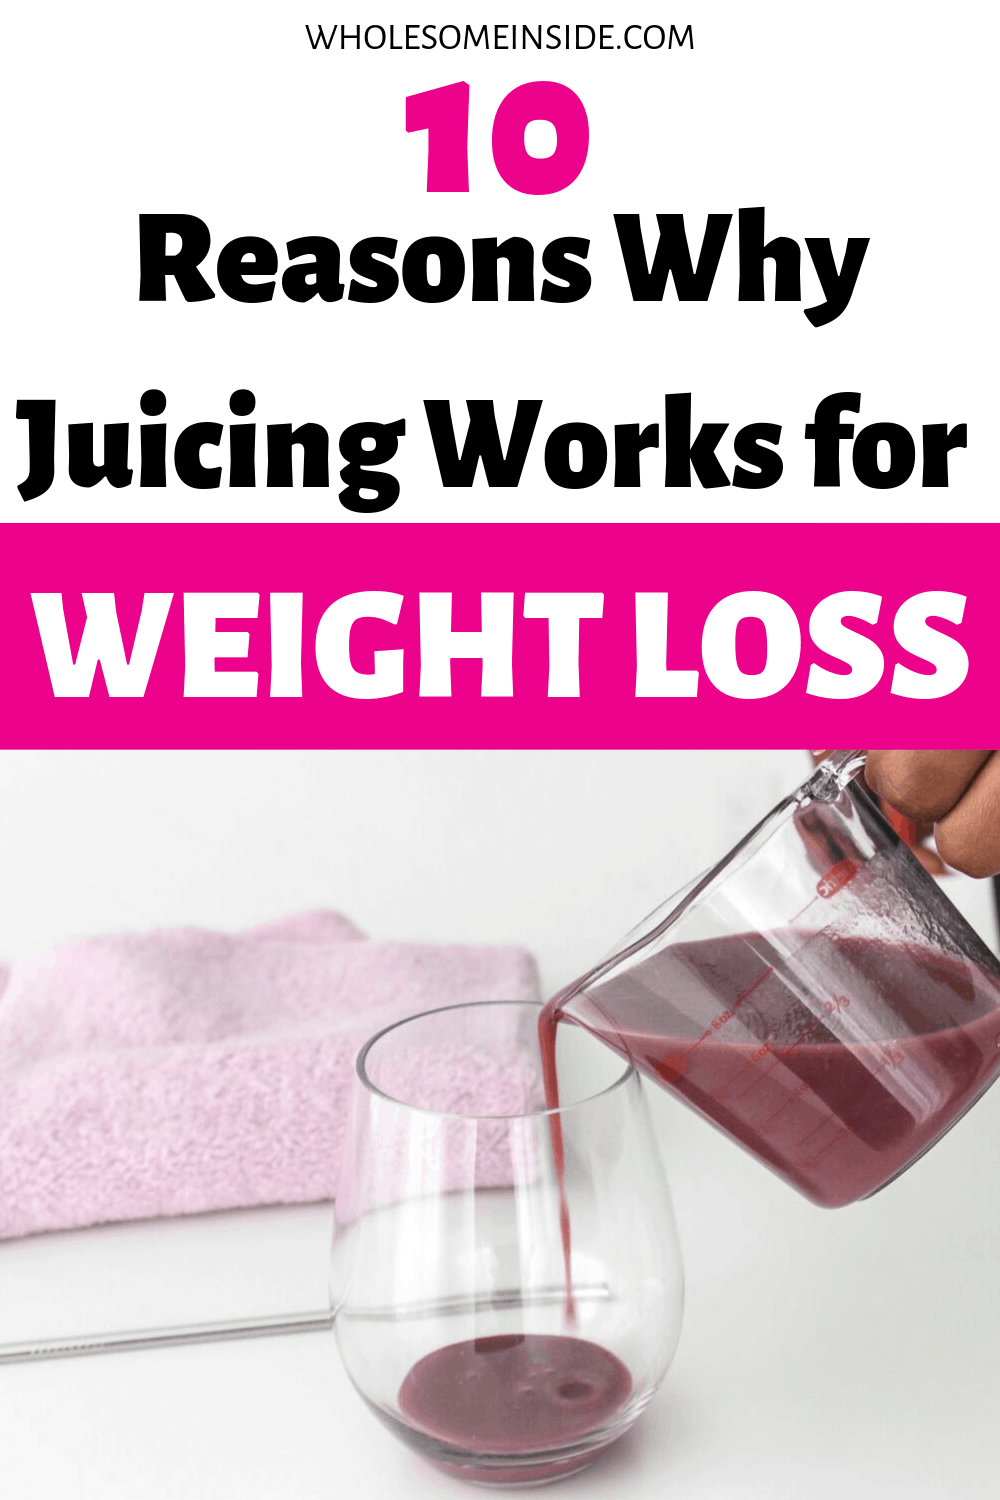 Reasons why juicing works for weight loss. Drinking juice to lose weight